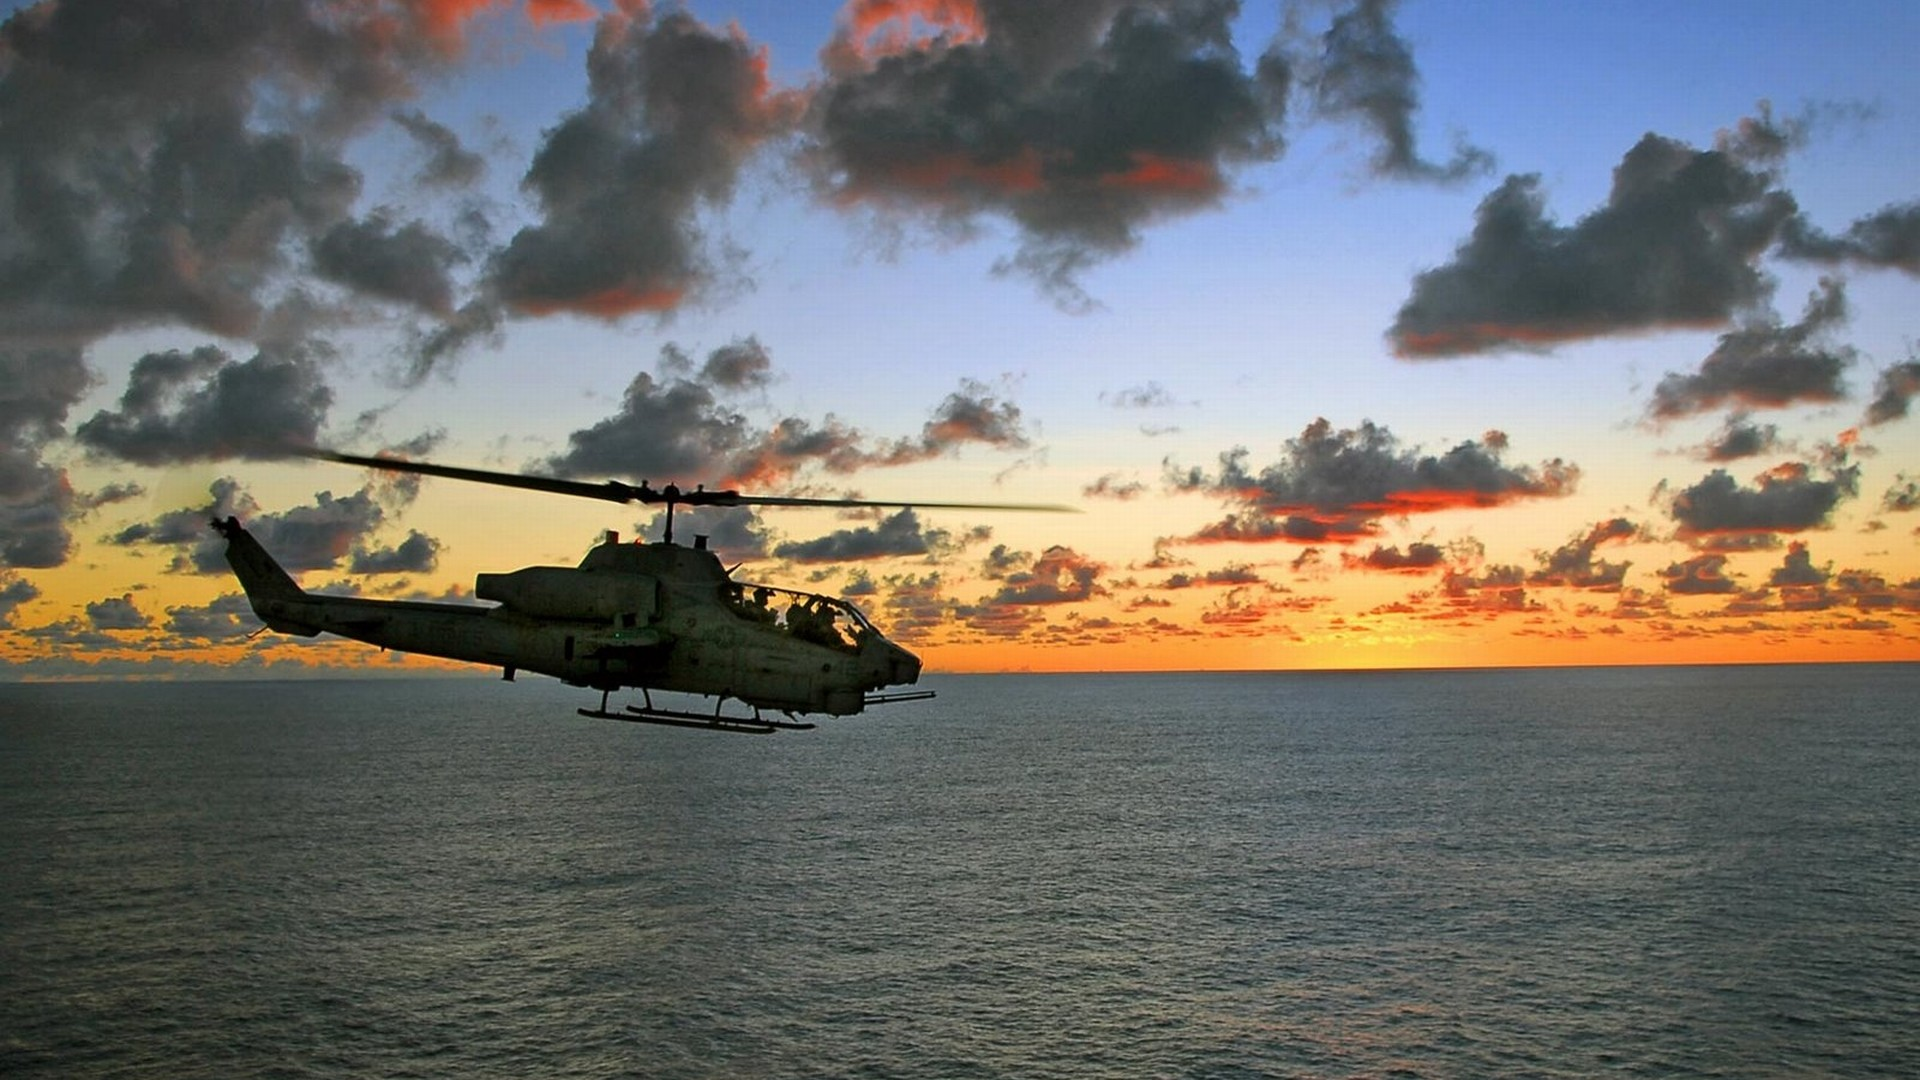 Helicopter Wallpaper 10